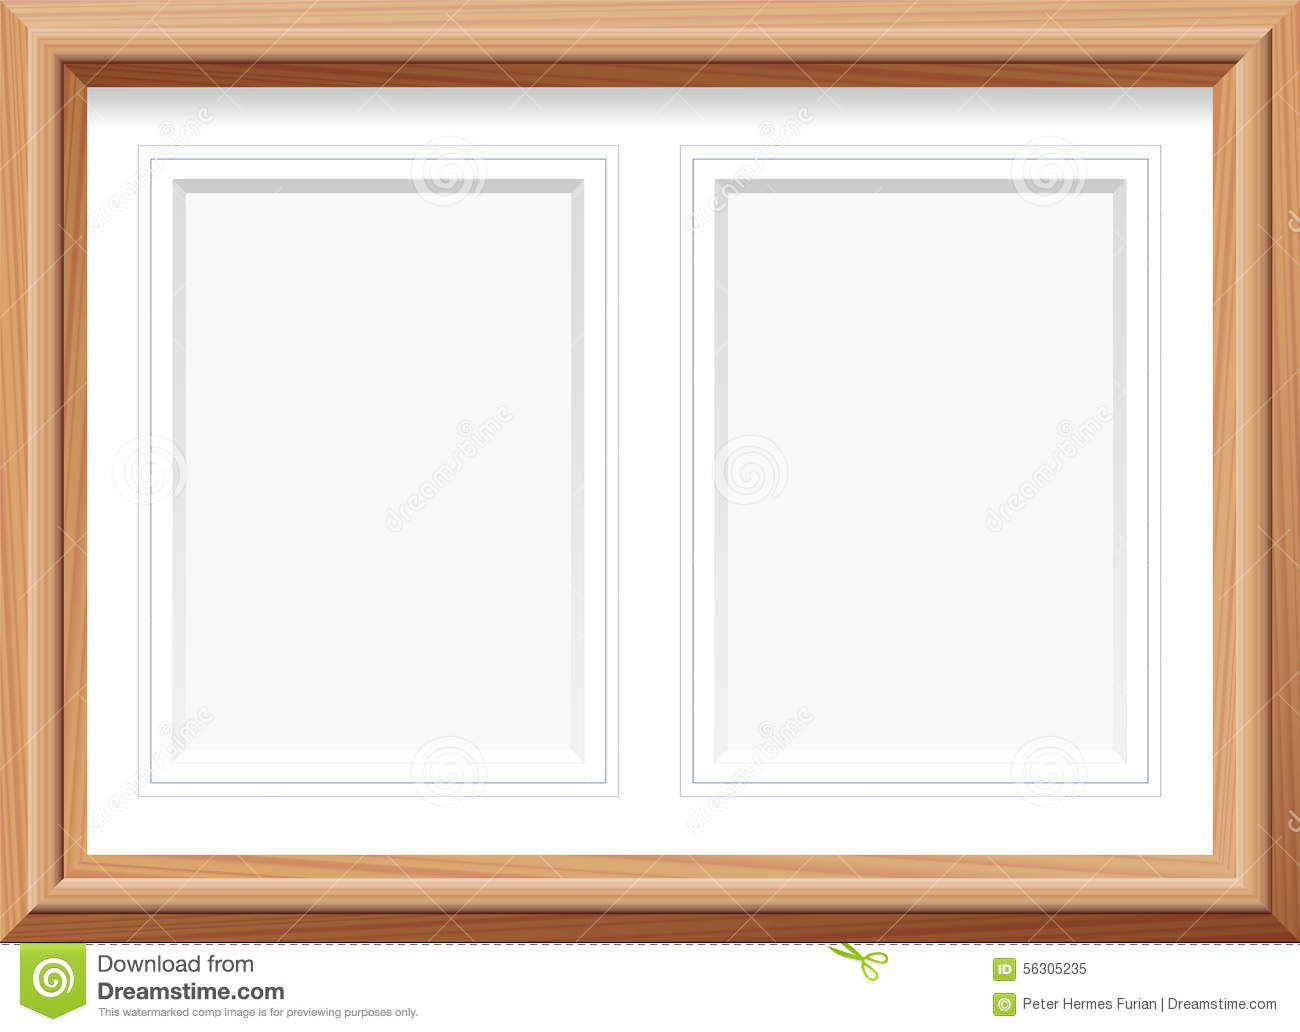 fb0c7881f7 Horizontal picture frame with two portrait format mats for two pictures.  Vector illustration.